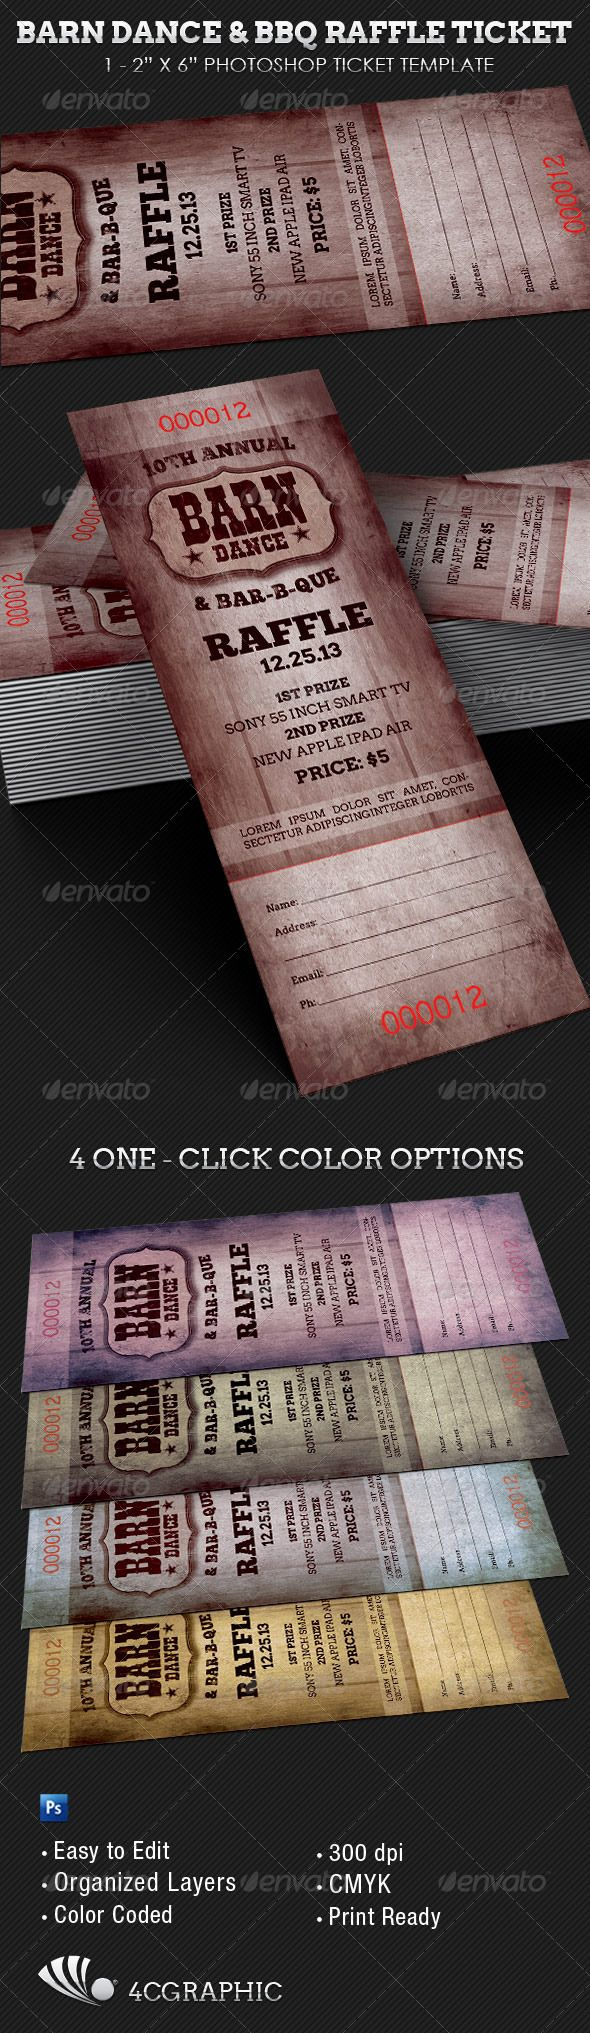 The Barn Dance & BBQ Raffle Ticket Template - Events Flyers